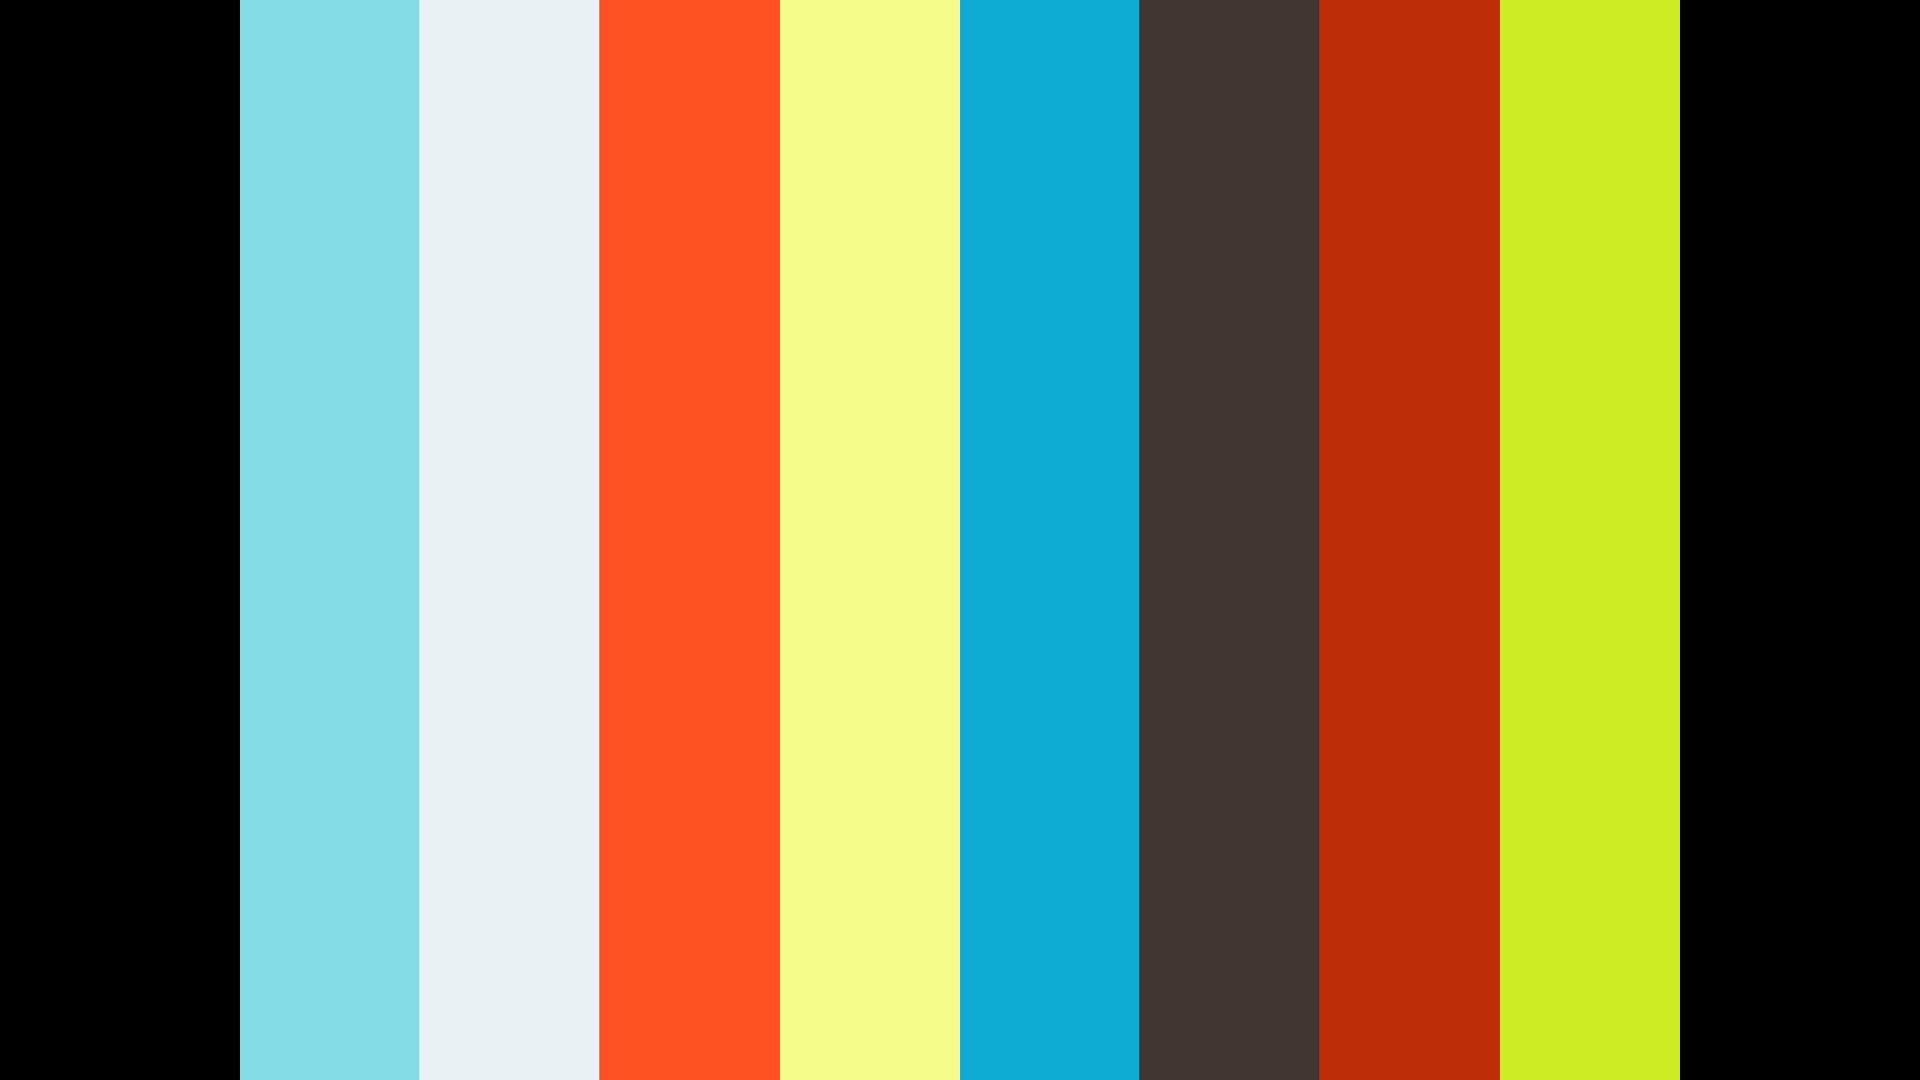 The Question About the Cross